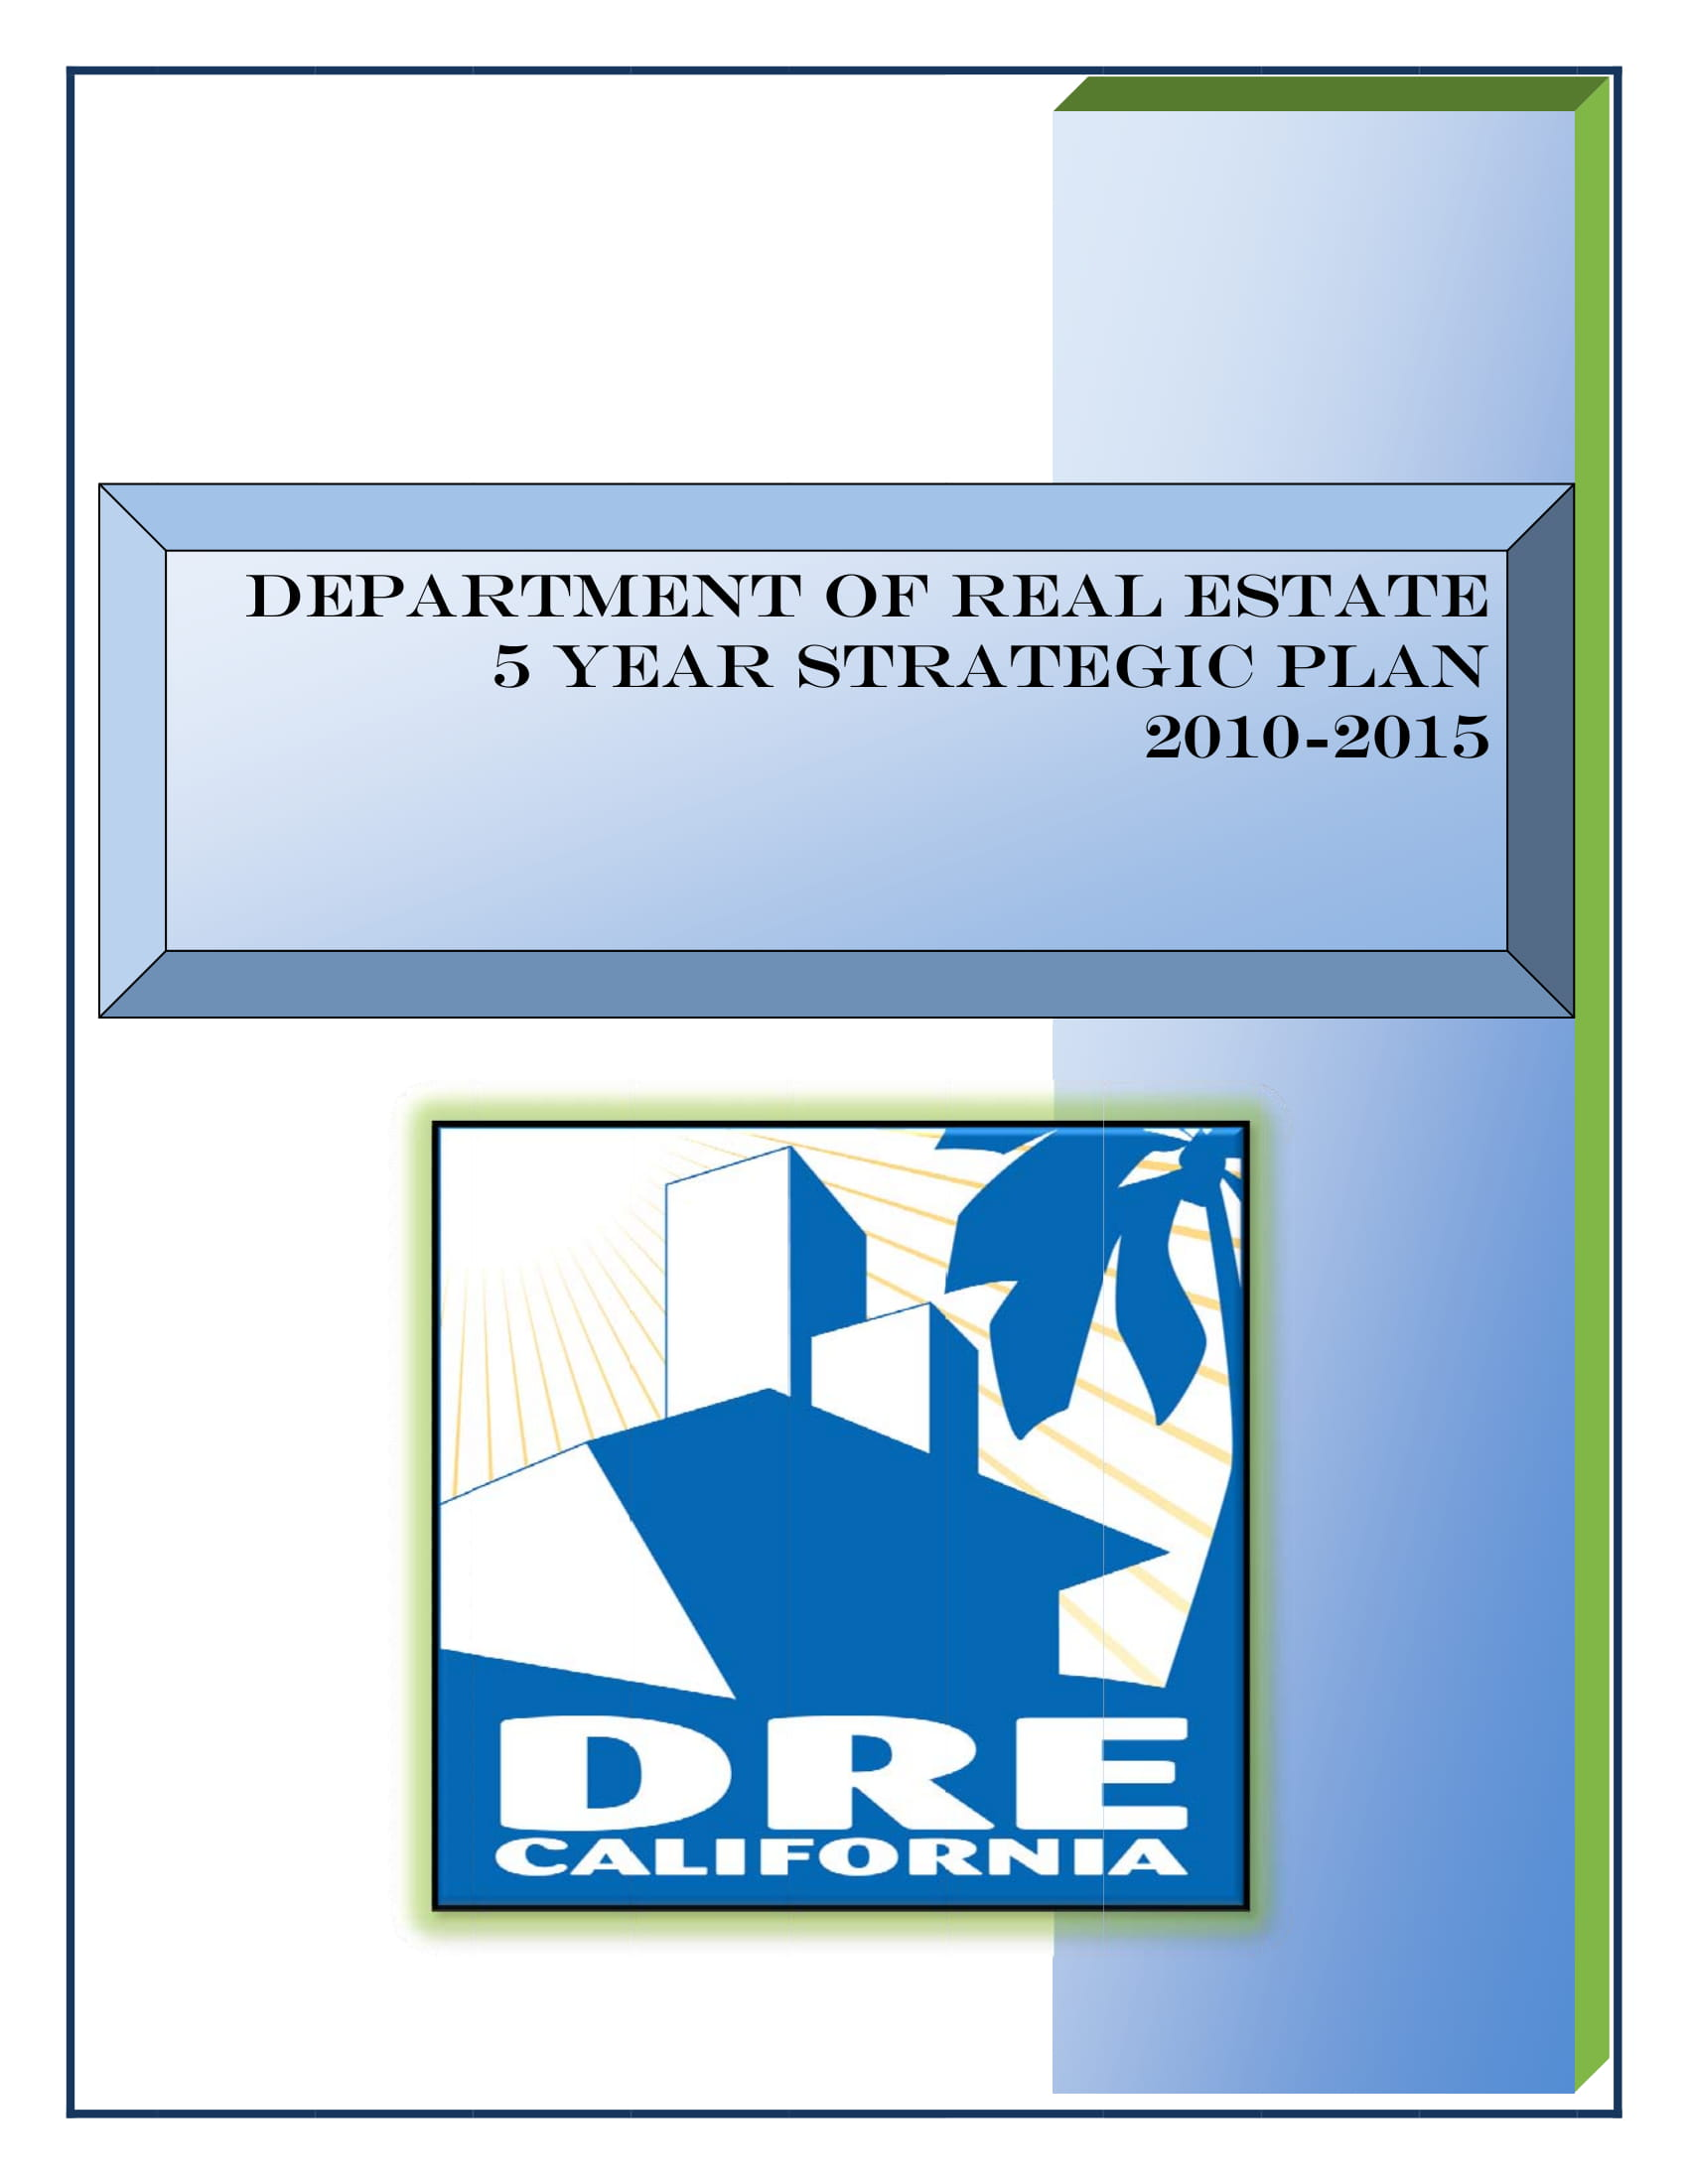 department of real estate five year strategic plan example 01